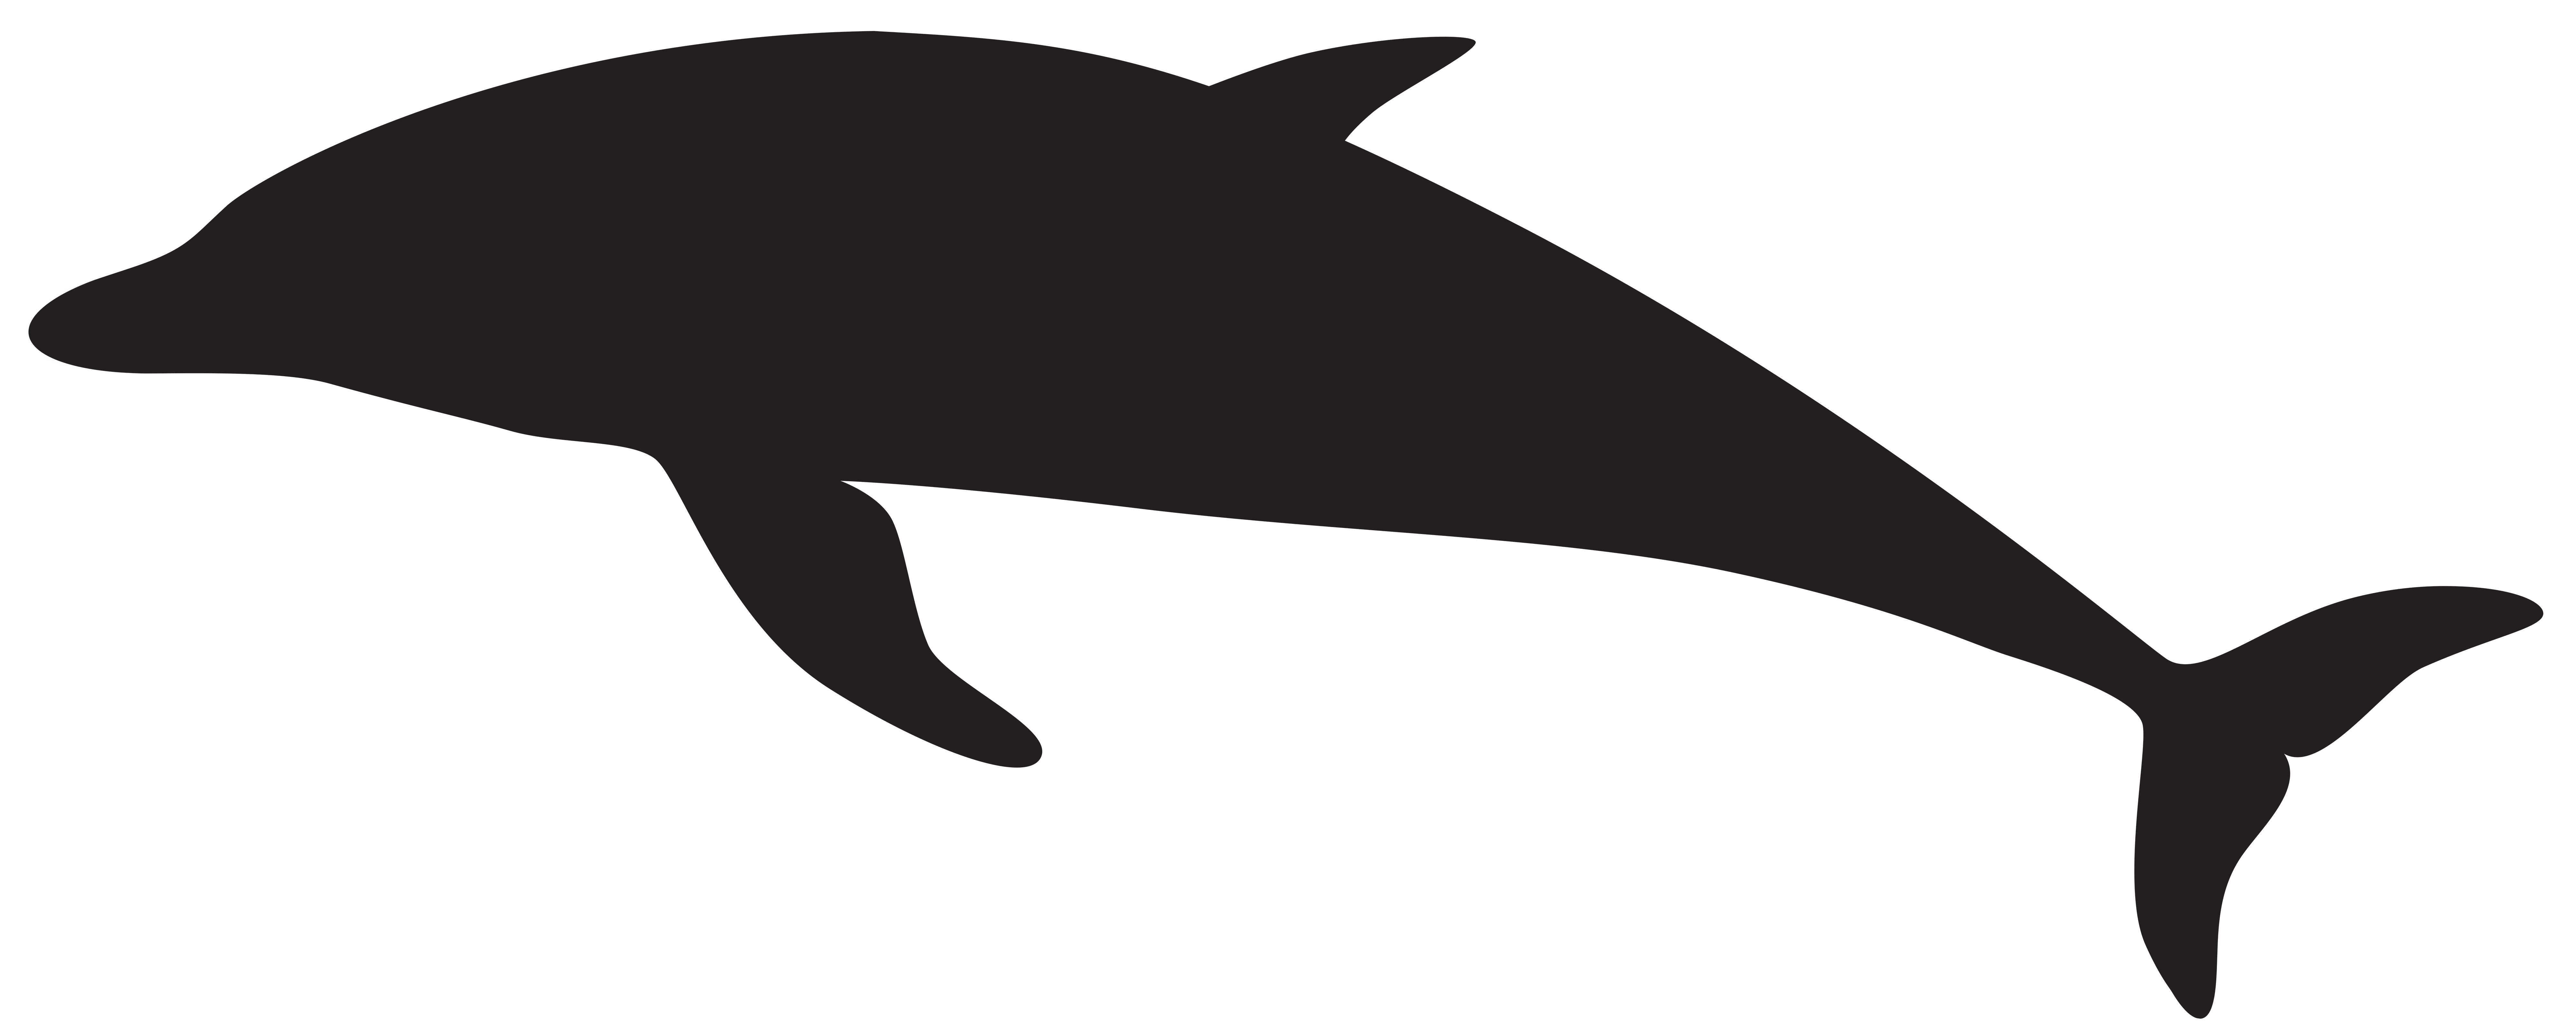 Shaow clipart dolphin Art size Dolphin full Gallery